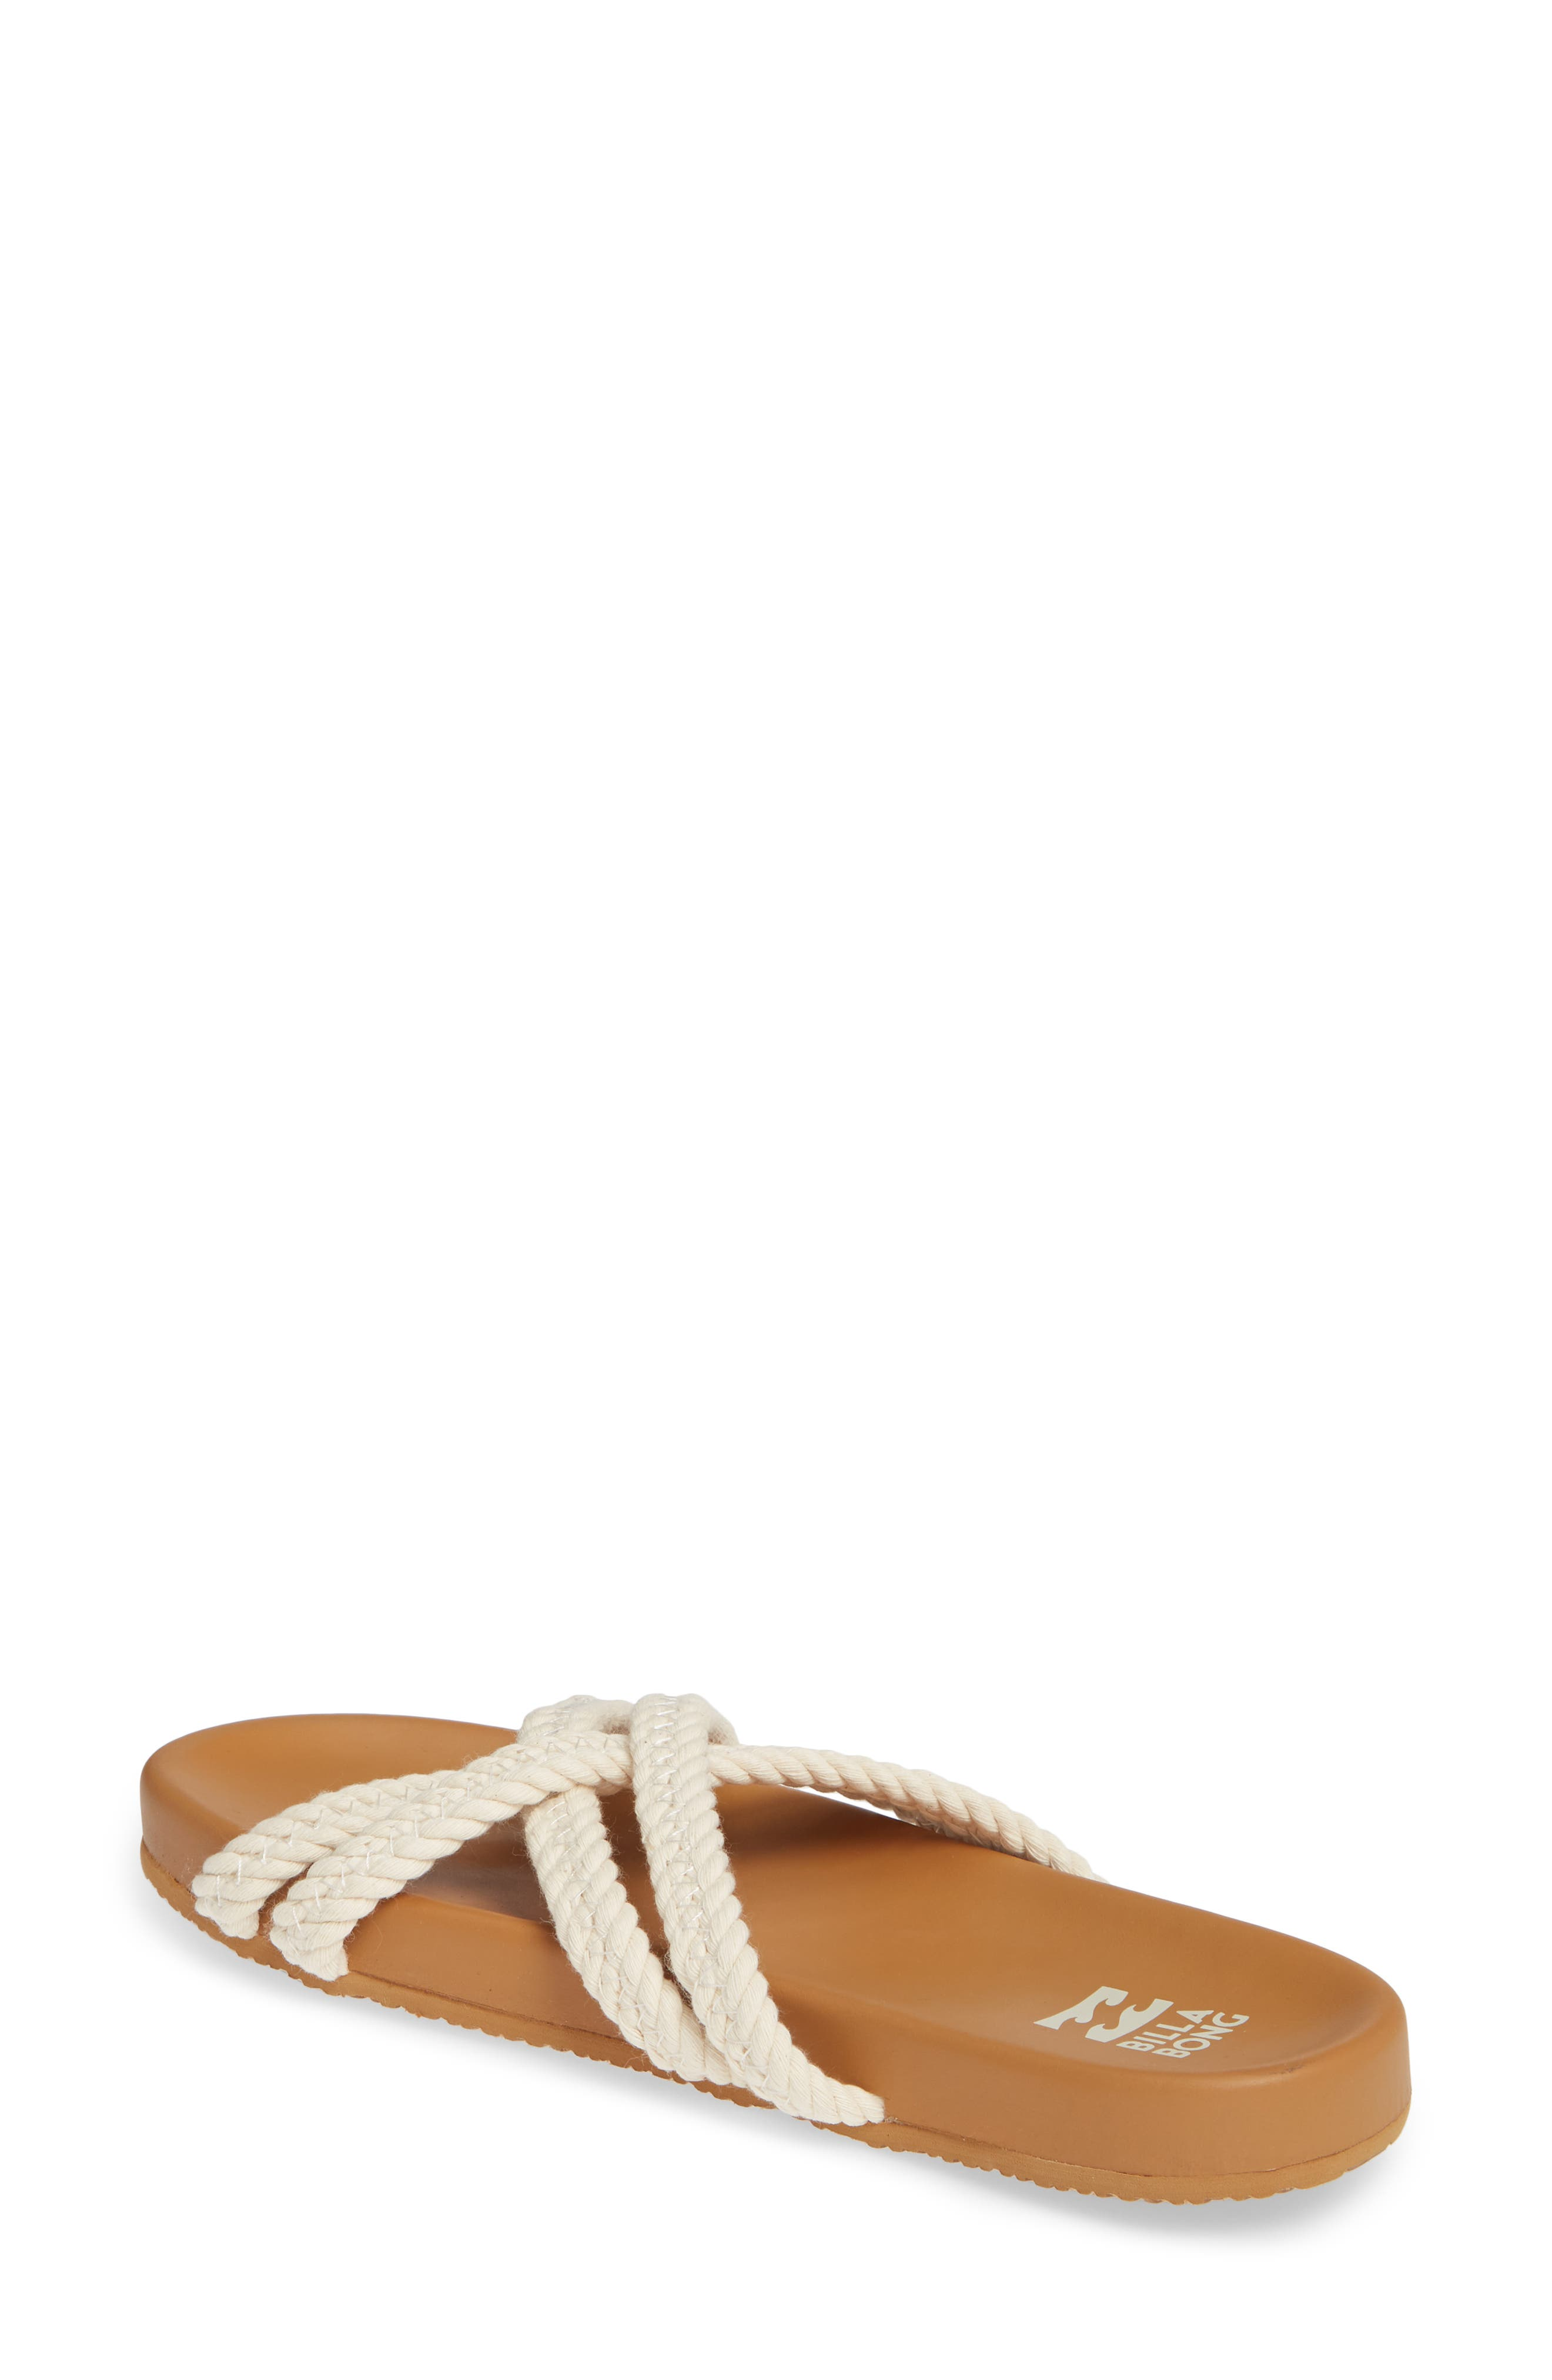 3edecbb46bb5 Women s Billabong Sandals